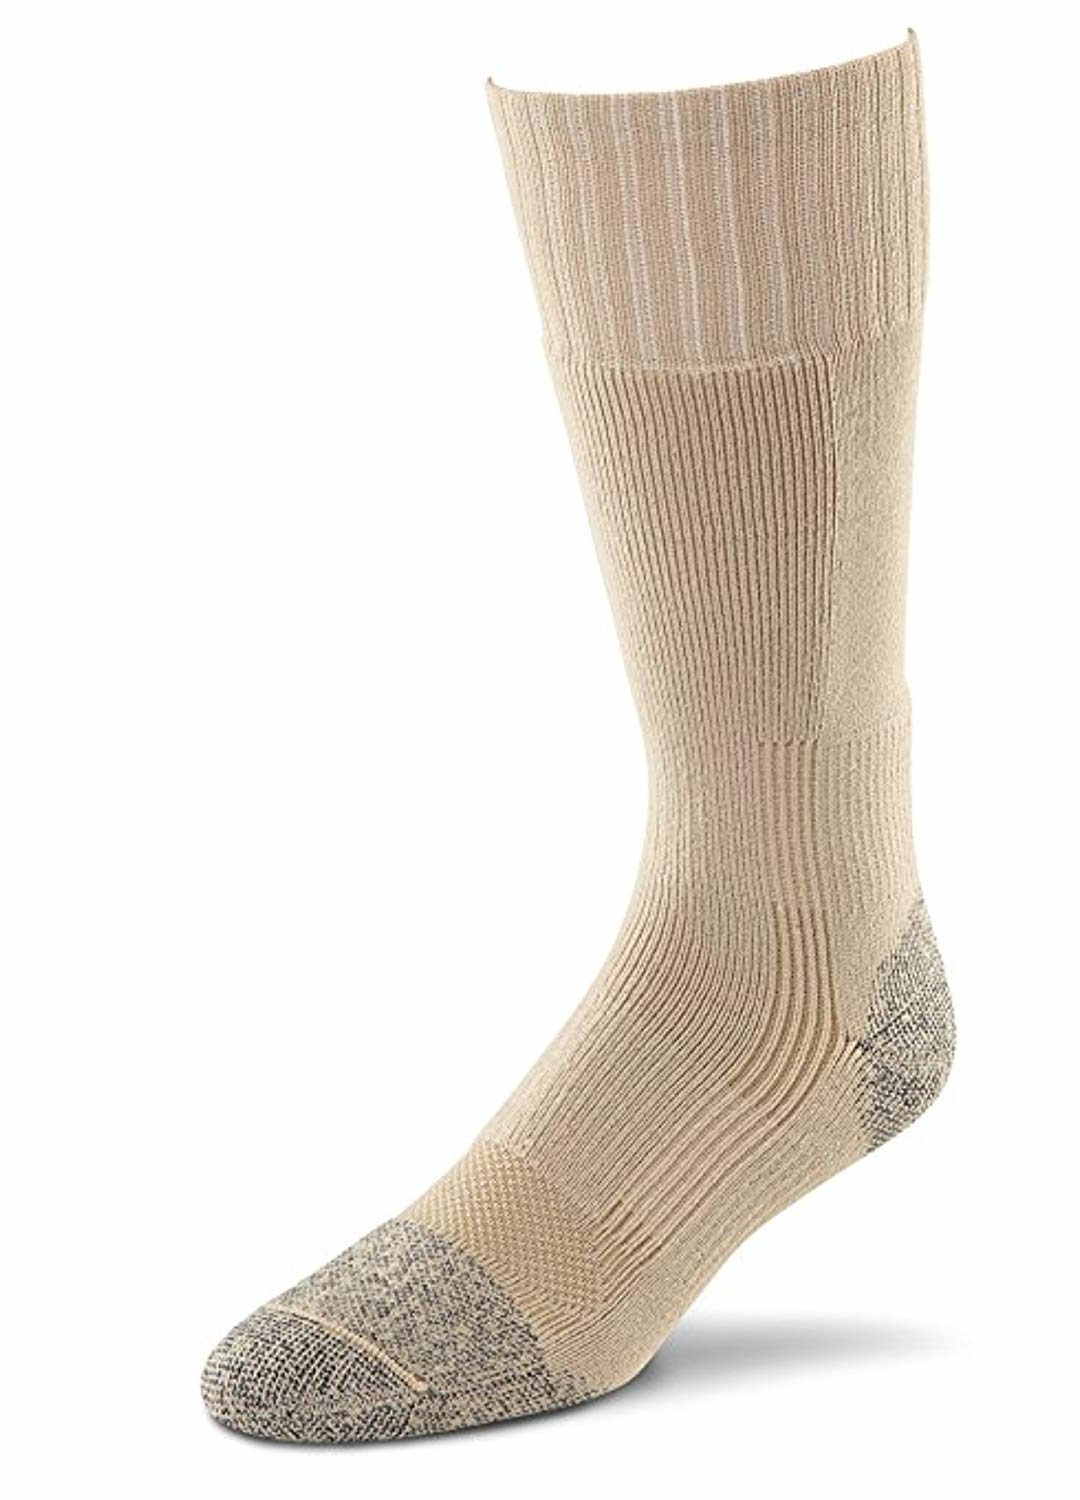 foxx River Adult Military Maximum Over-The-Calf Socks best hunting socks for cold weather